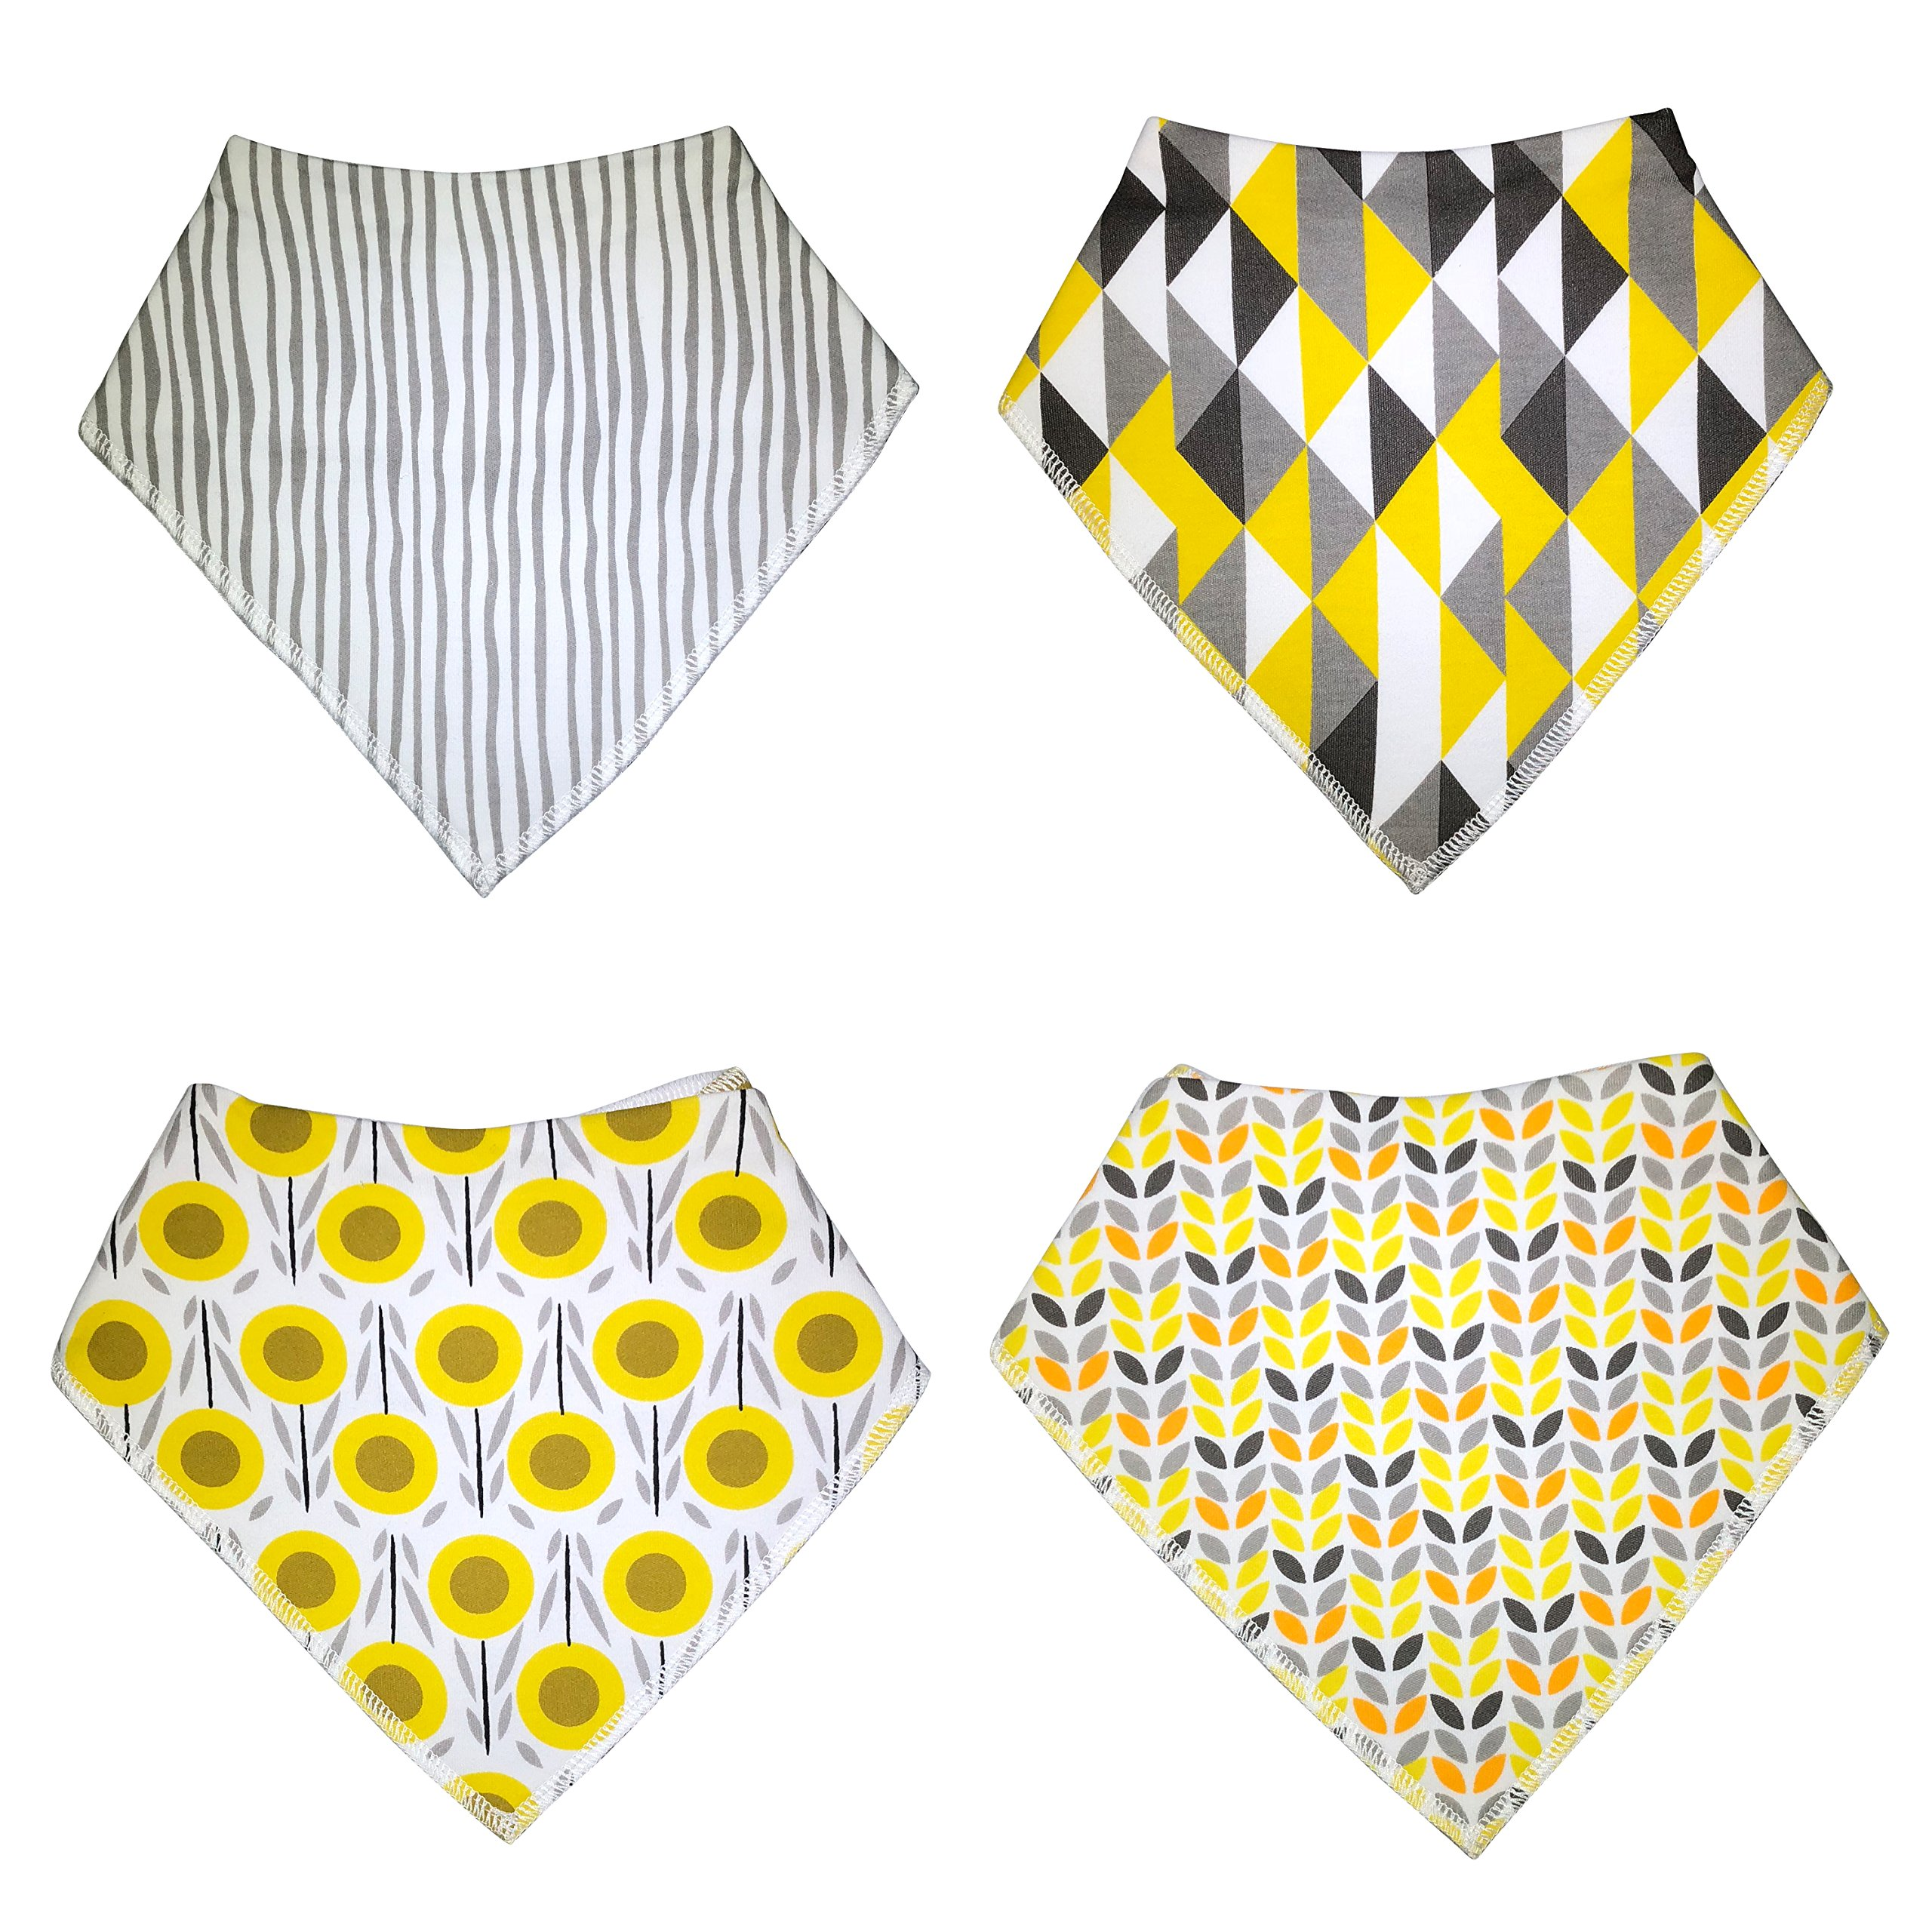 KodaBear Signature Pet Dog Bandana Scarf, 4 Pack, Triangle Bib Kerchief for Dogs, Buttons Up, Machine Washable, Soft Cotton Material (Sun Flower Pack)